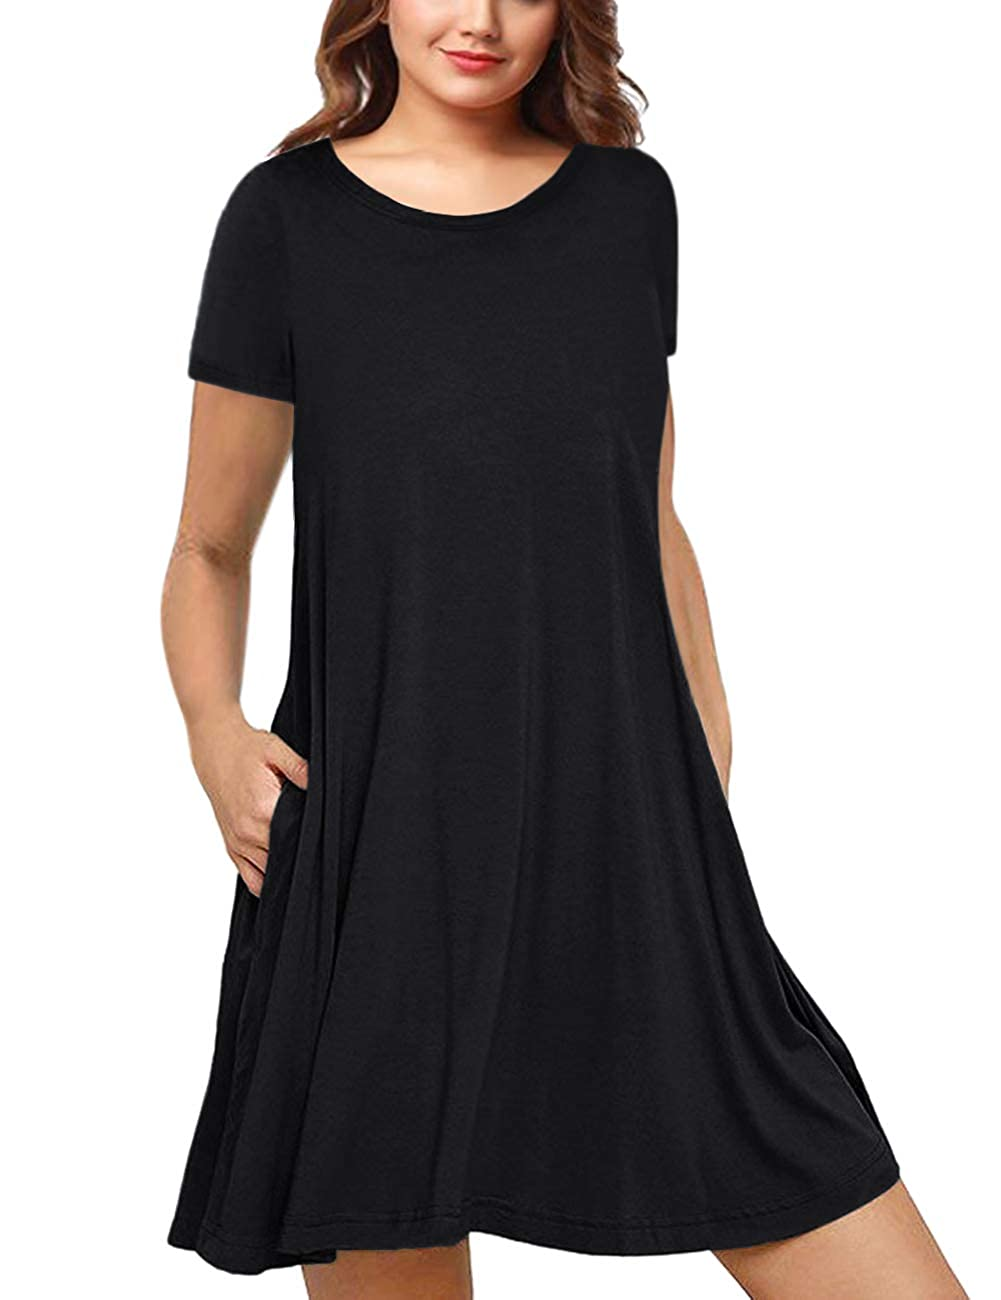 452846c8b3c Casual Black Dress Plus Size - Gomes Weine AG